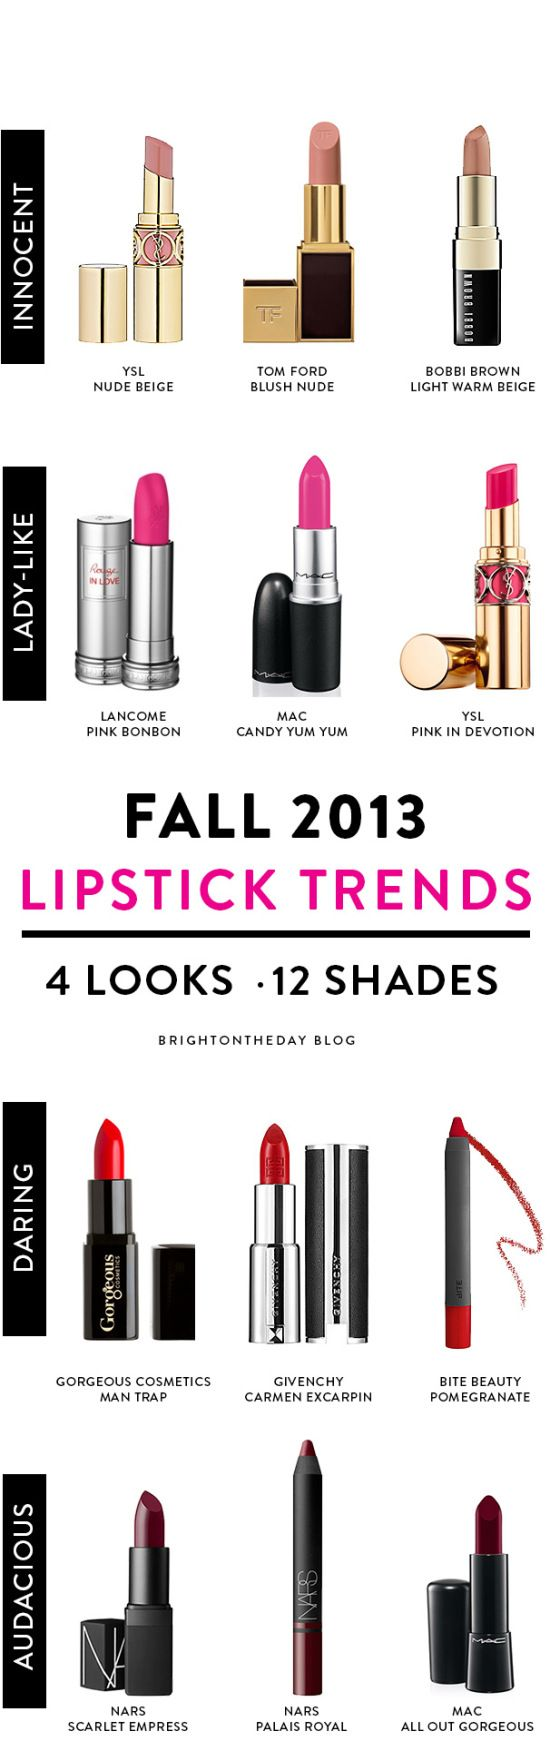 Fall 2013 Lipstick Trends - 4 Looks 12 Shades